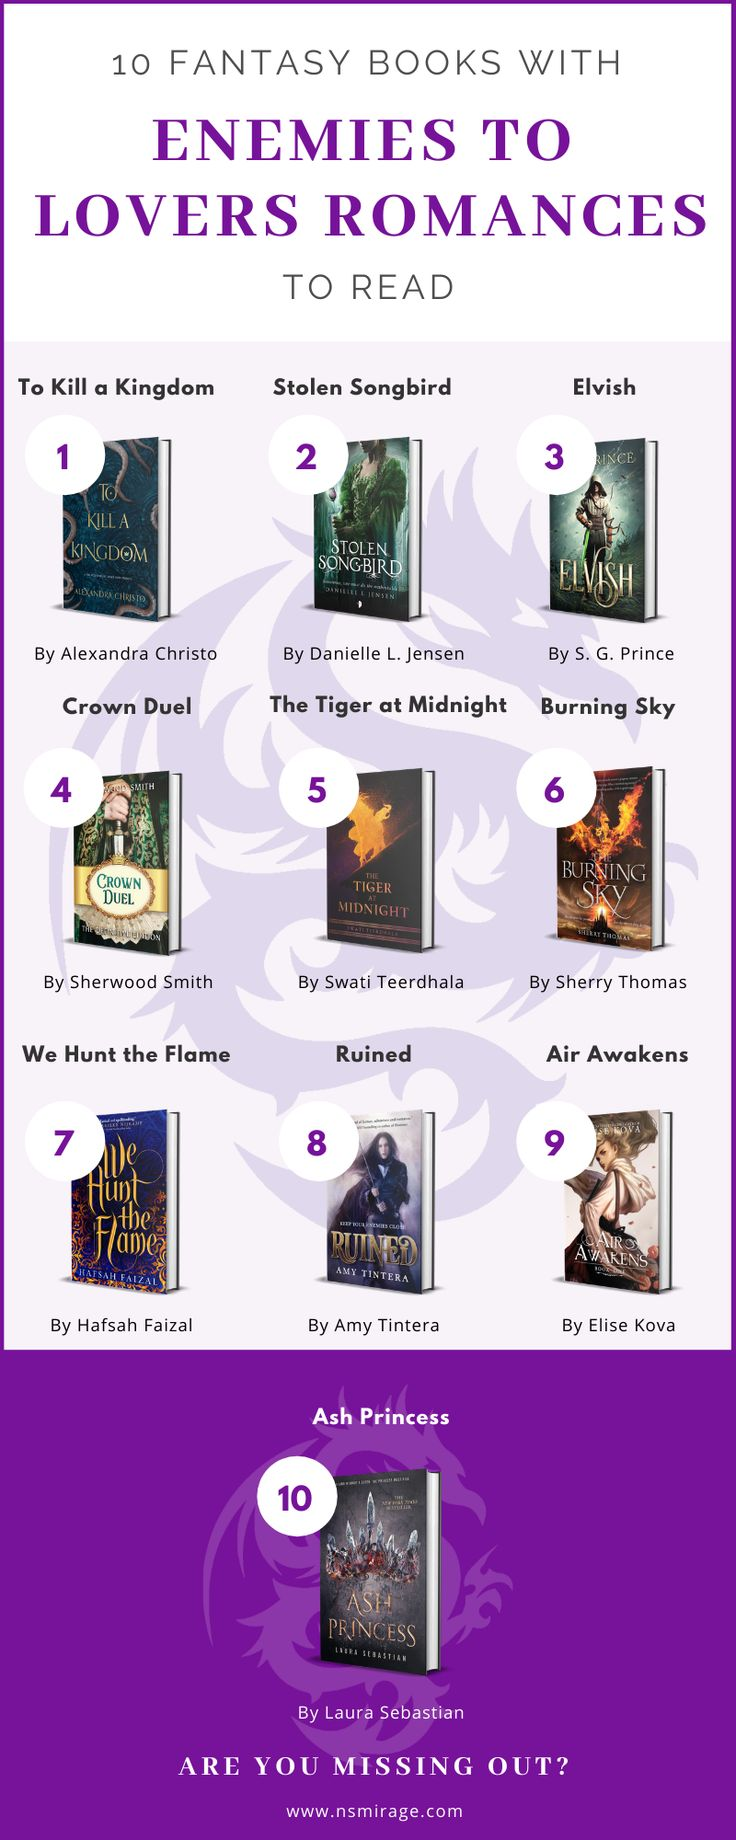 10 Simmering Fantasy Books With Enemies To Lovers Romances Ya Fantasy Books Good Romance Books Fantasy Books